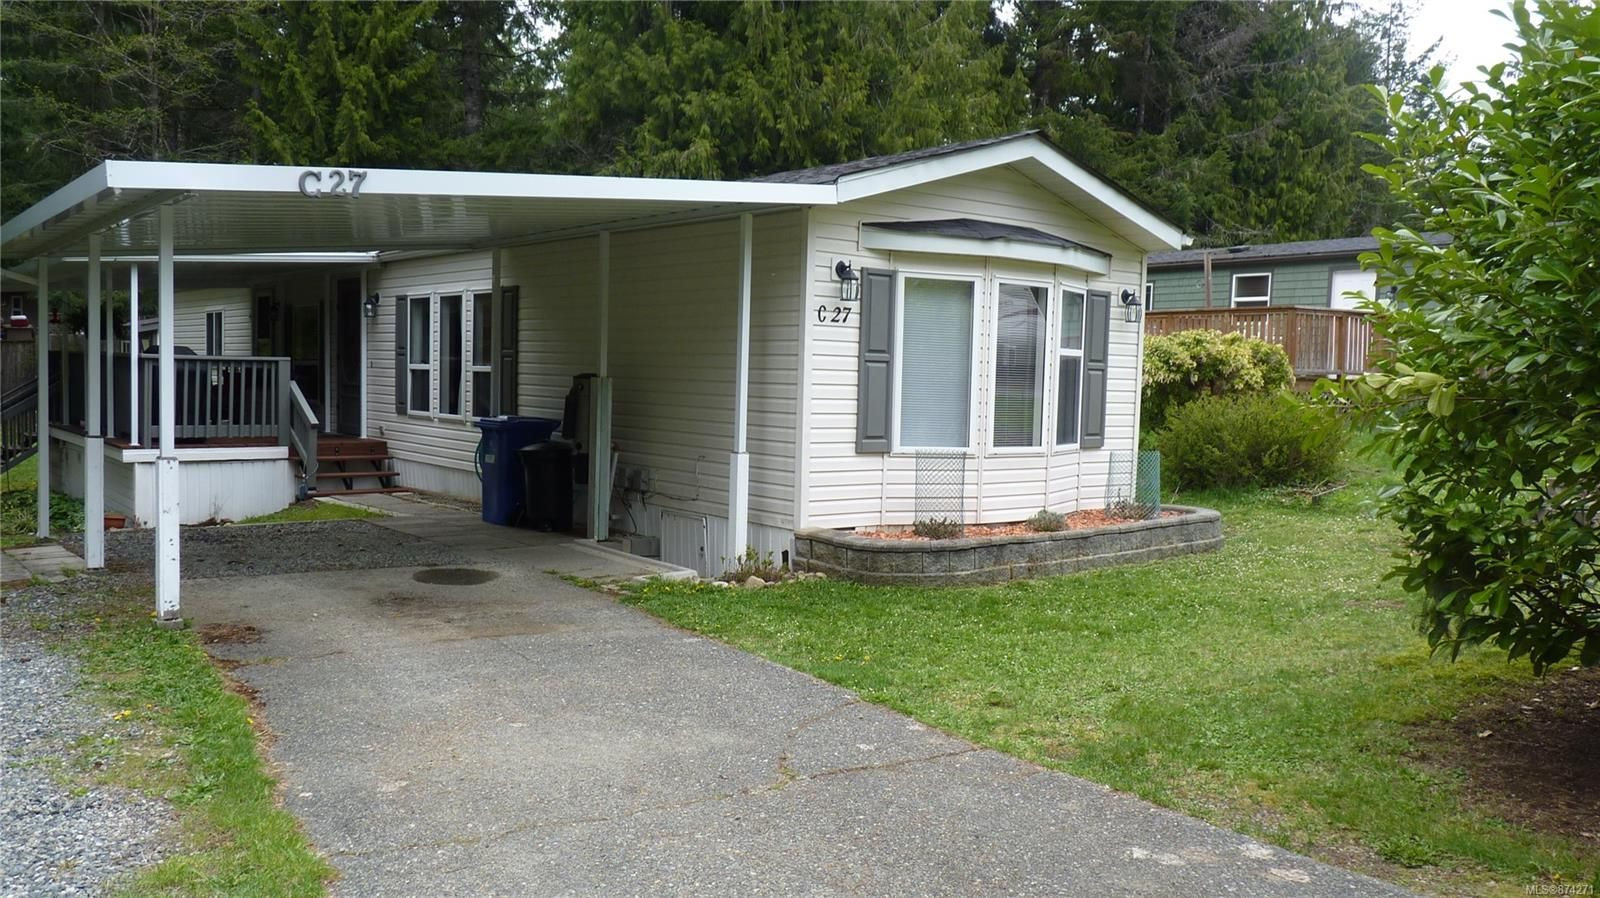 Main Photo: C27 920 Whittaker Rd in : ML Malahat Proper Manufactured Home for sale (Malahat & Area)  : MLS®# 874271